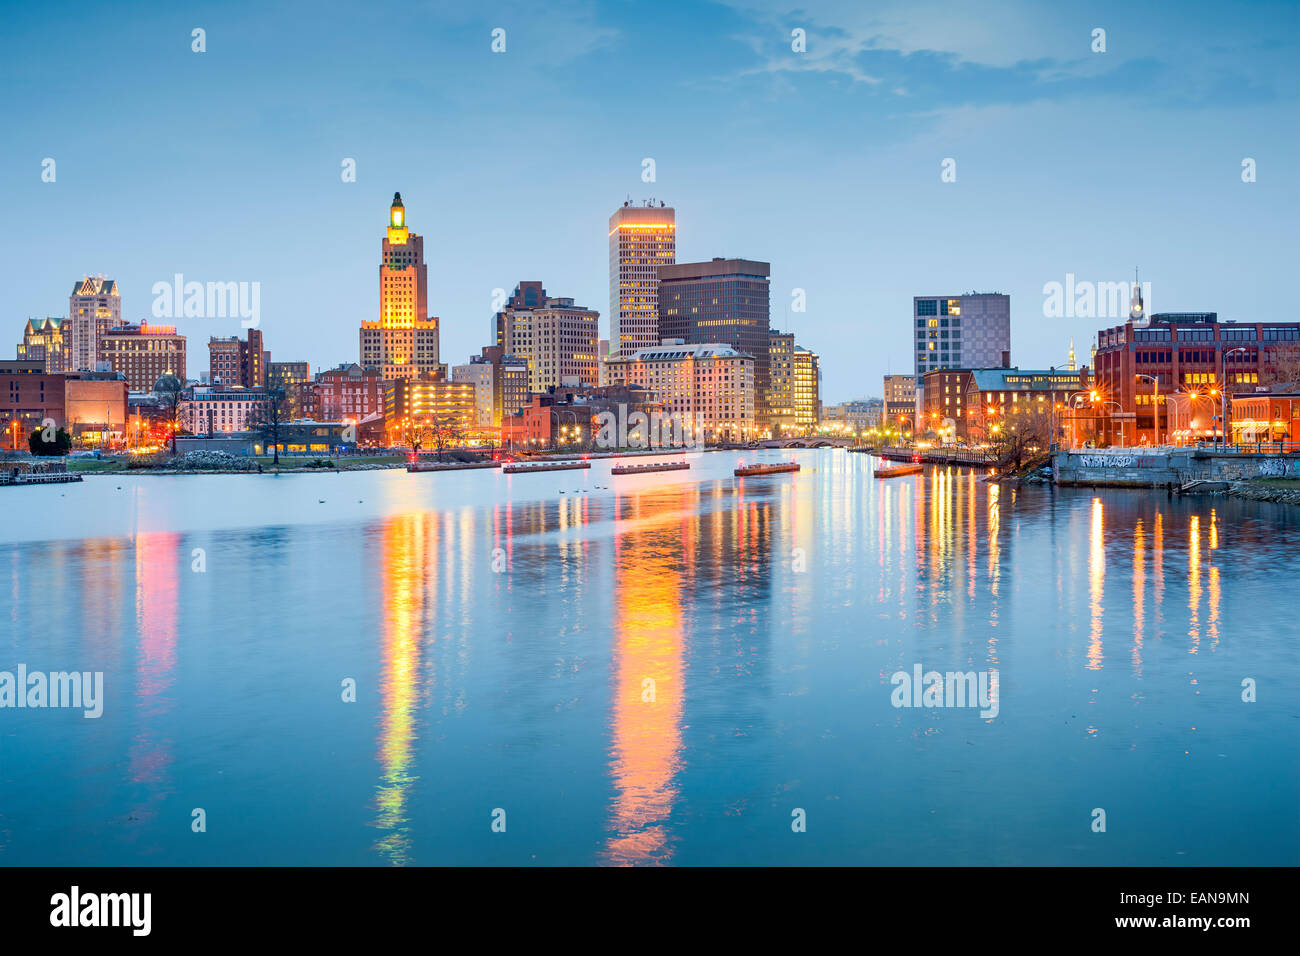 Providence, Rhode Island, USA city skyline on the Providence River at twilight. - Stock Image